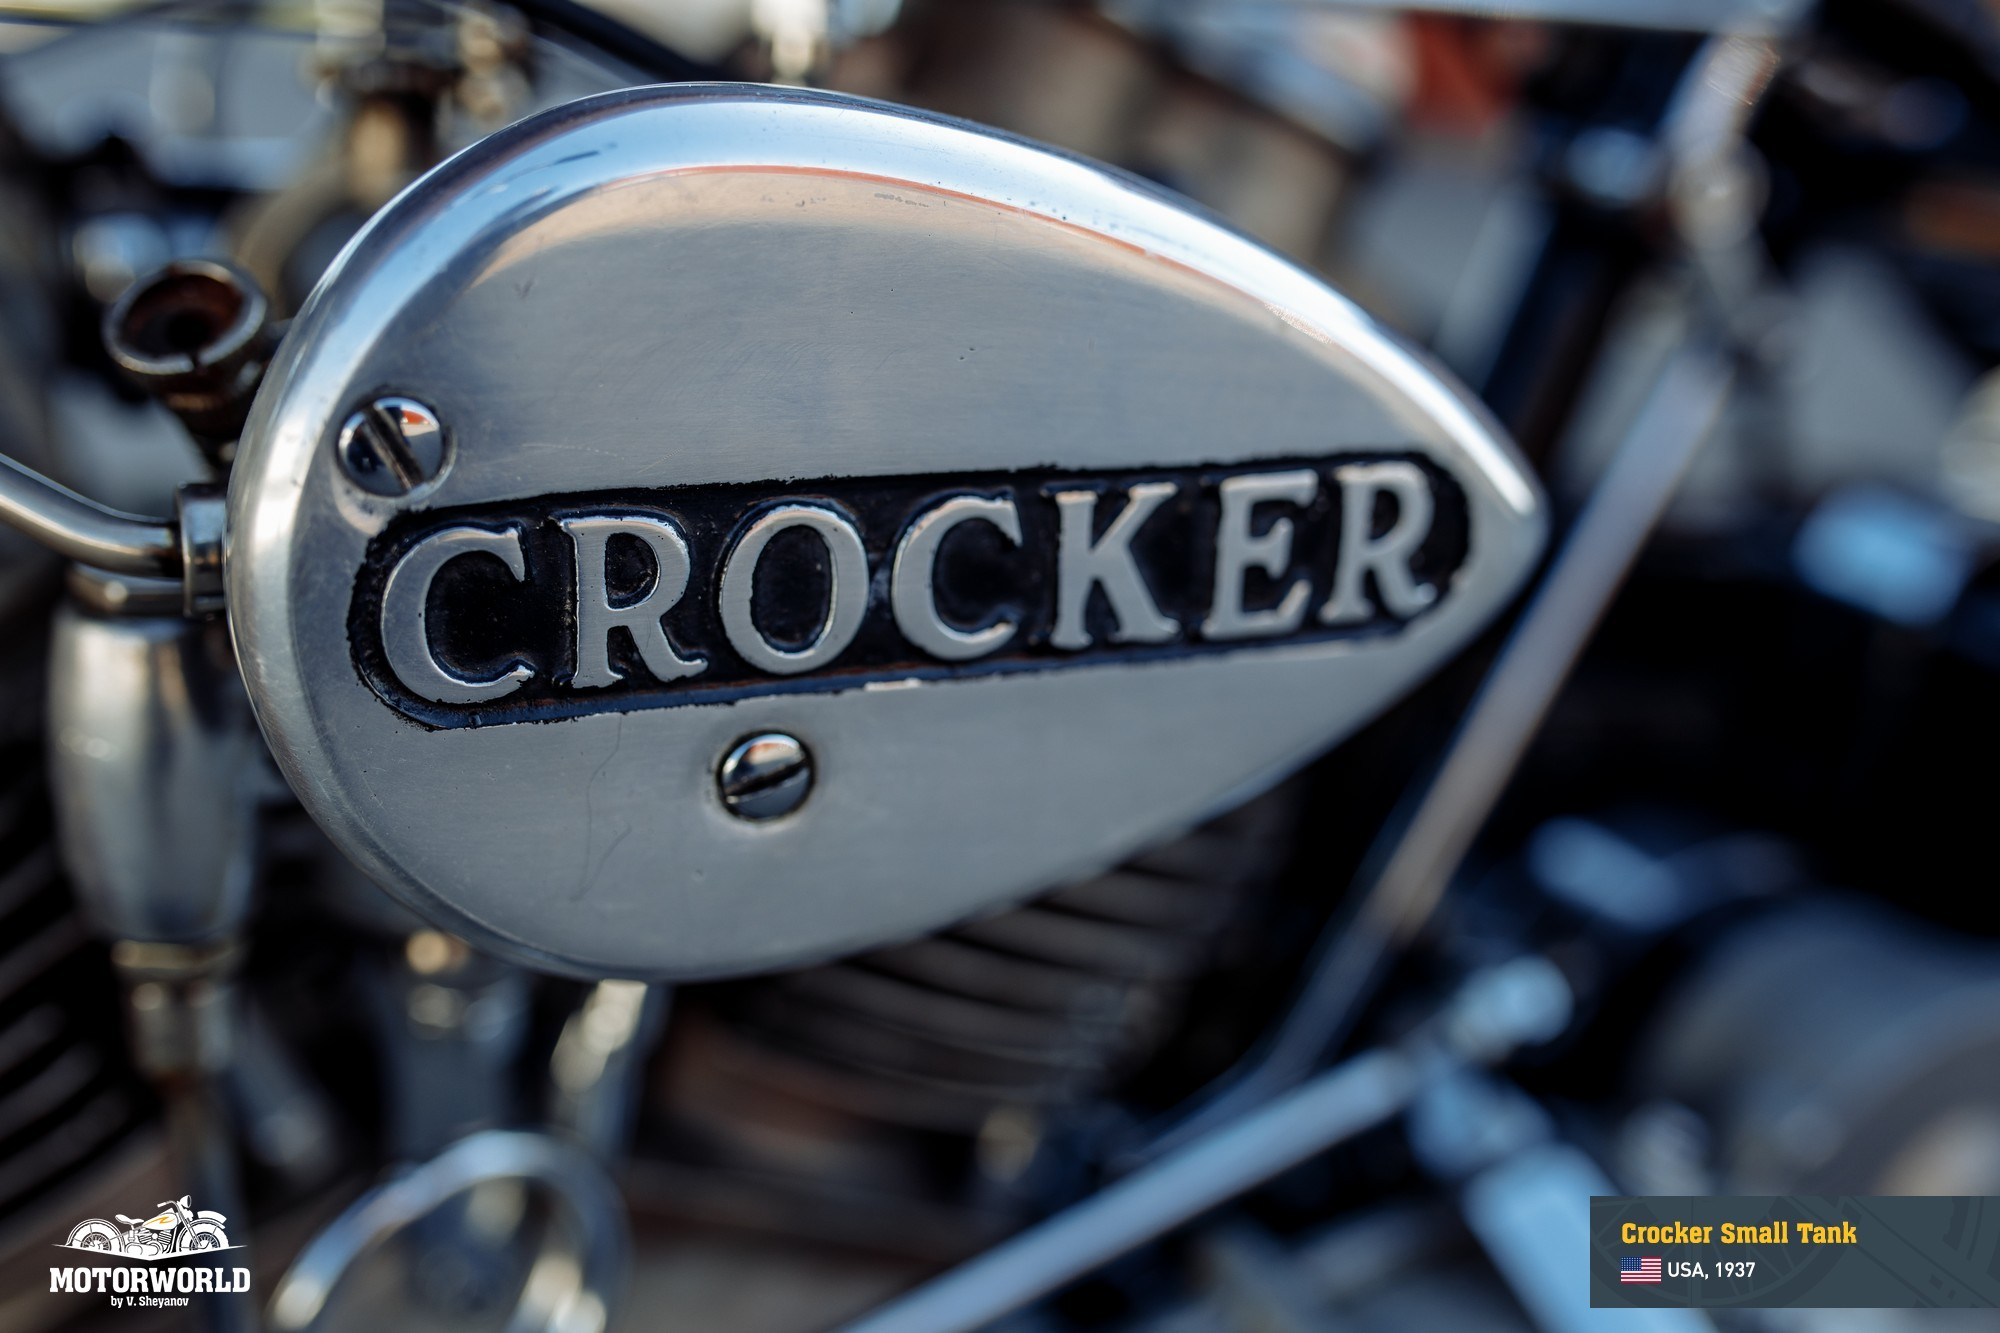 Original Crocker Small Tank